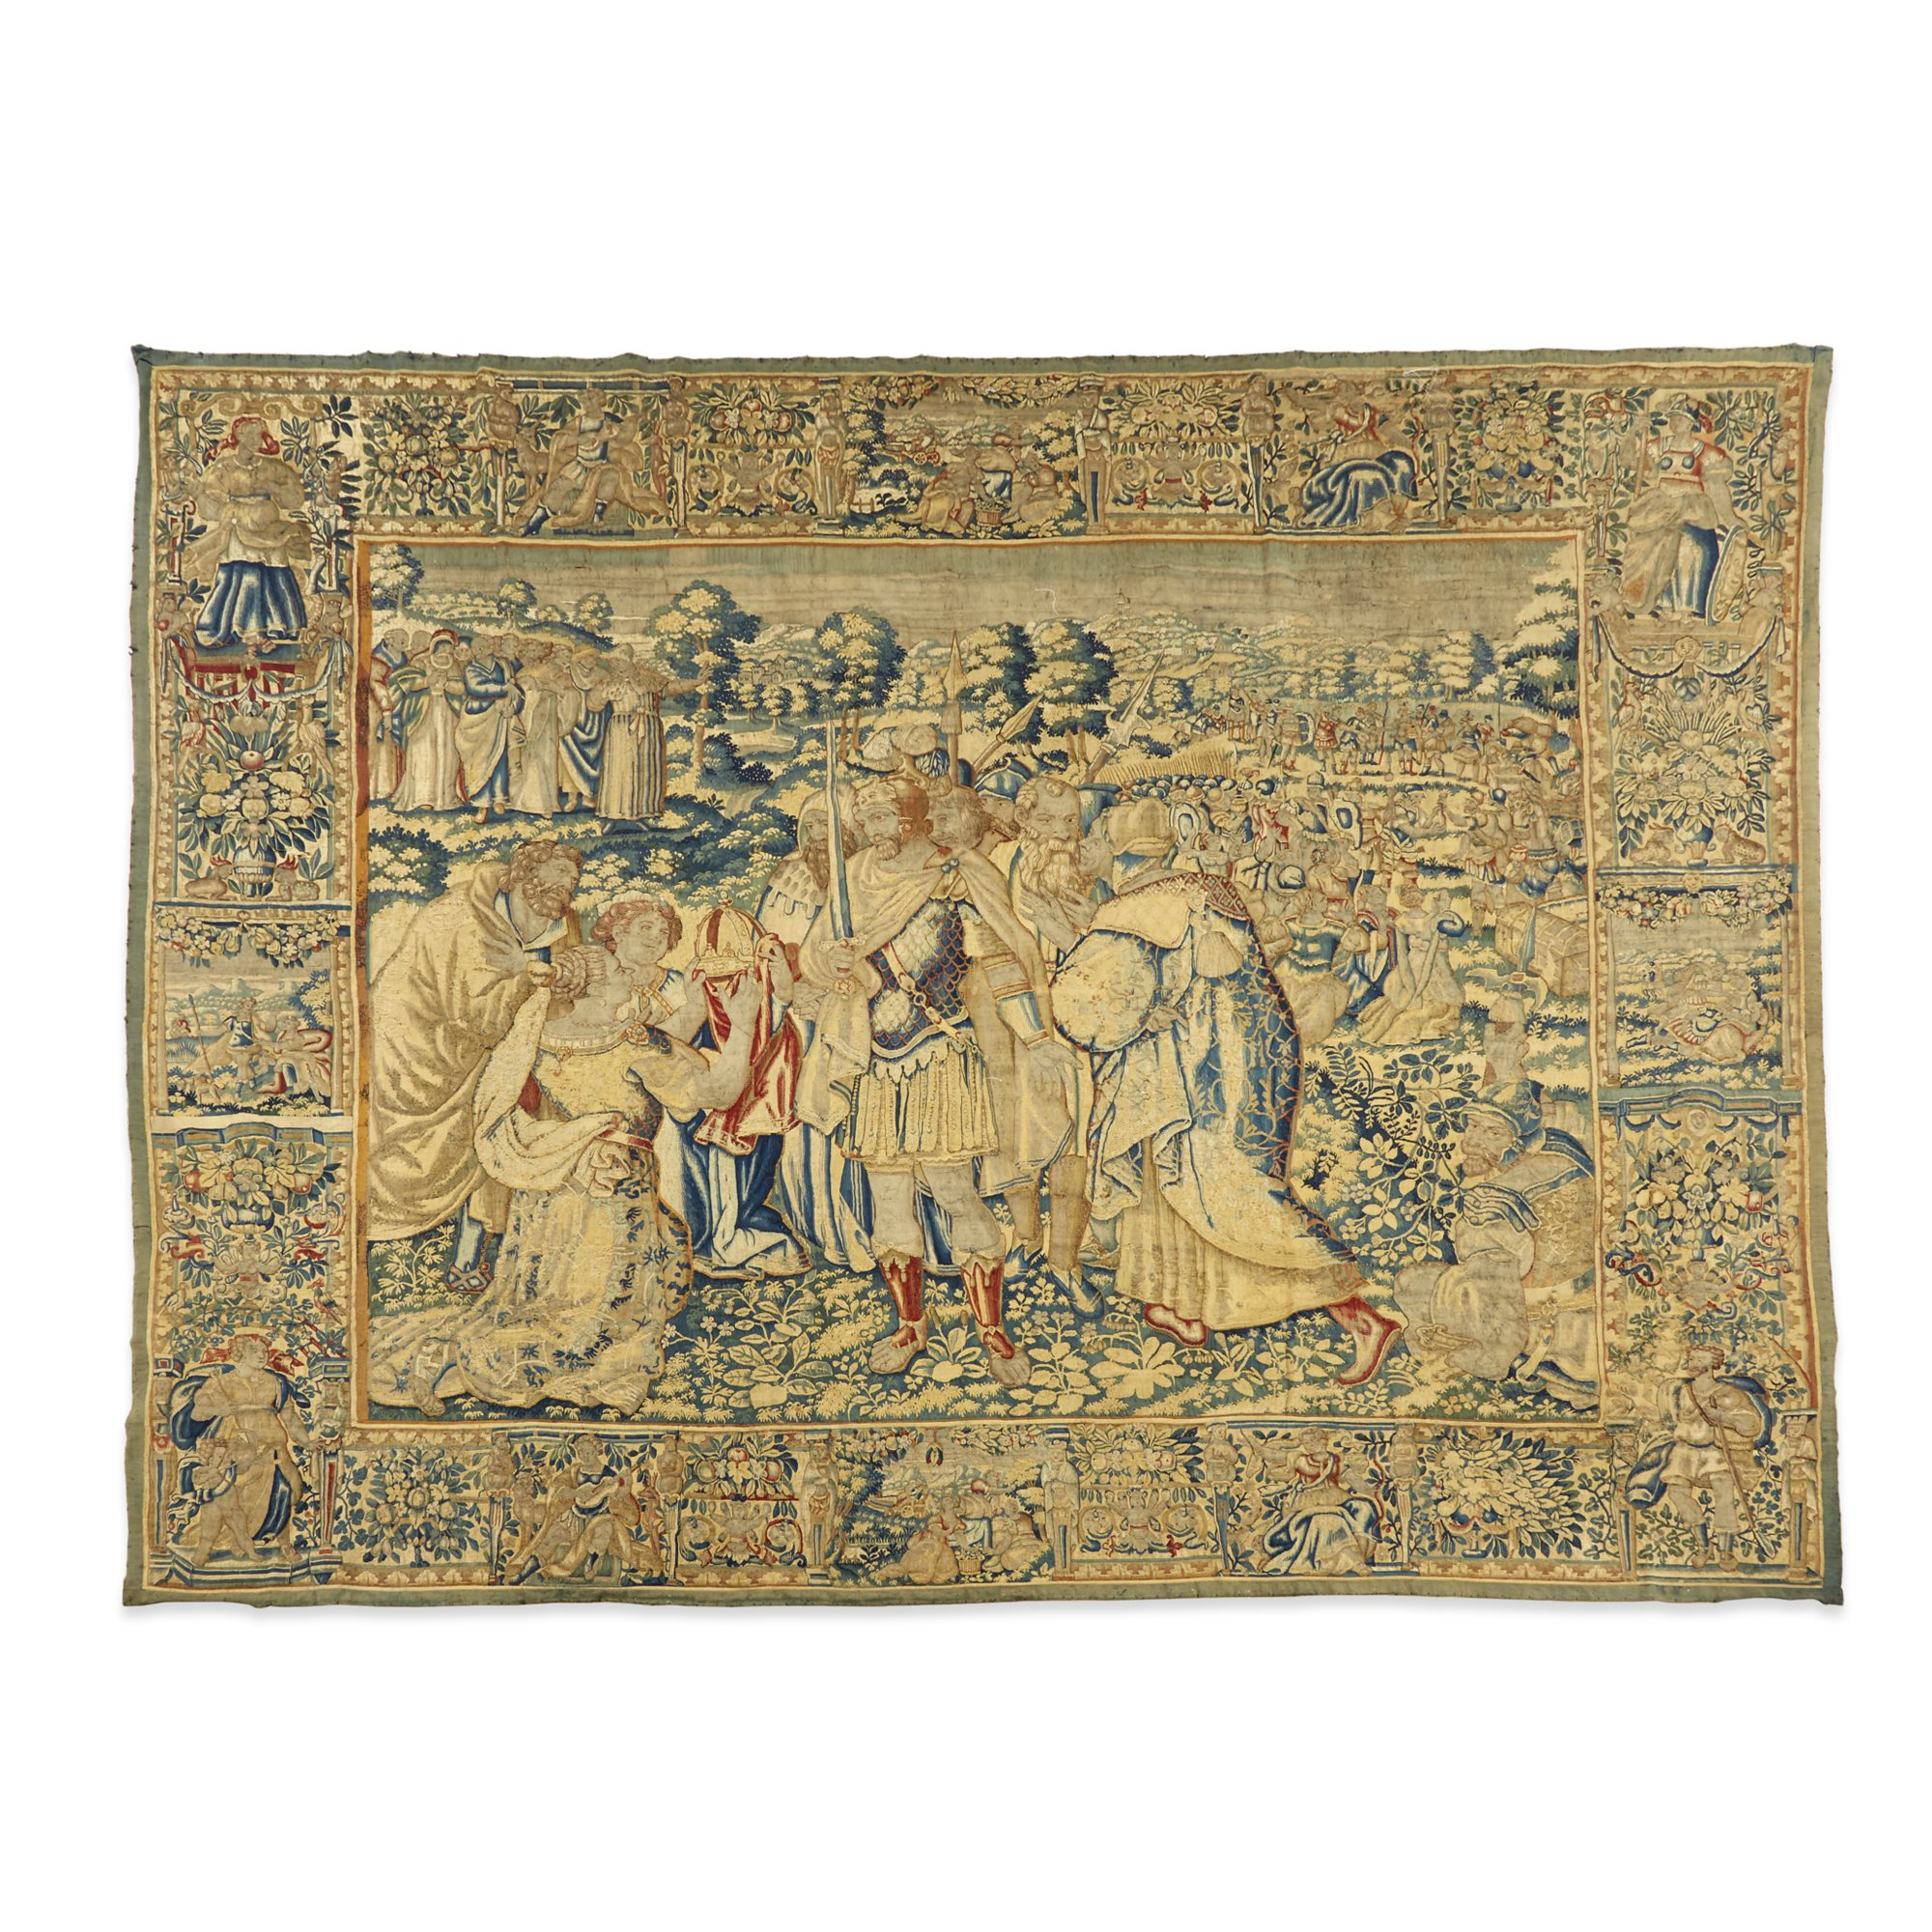 Lot 79: A Flemish mythological or historical tapestry, mid to late 16th century – will be returning to its former neighborhood of Windsor Farms in Richmond, Virginia, having been acquired by Agecroft Hall and Gardens